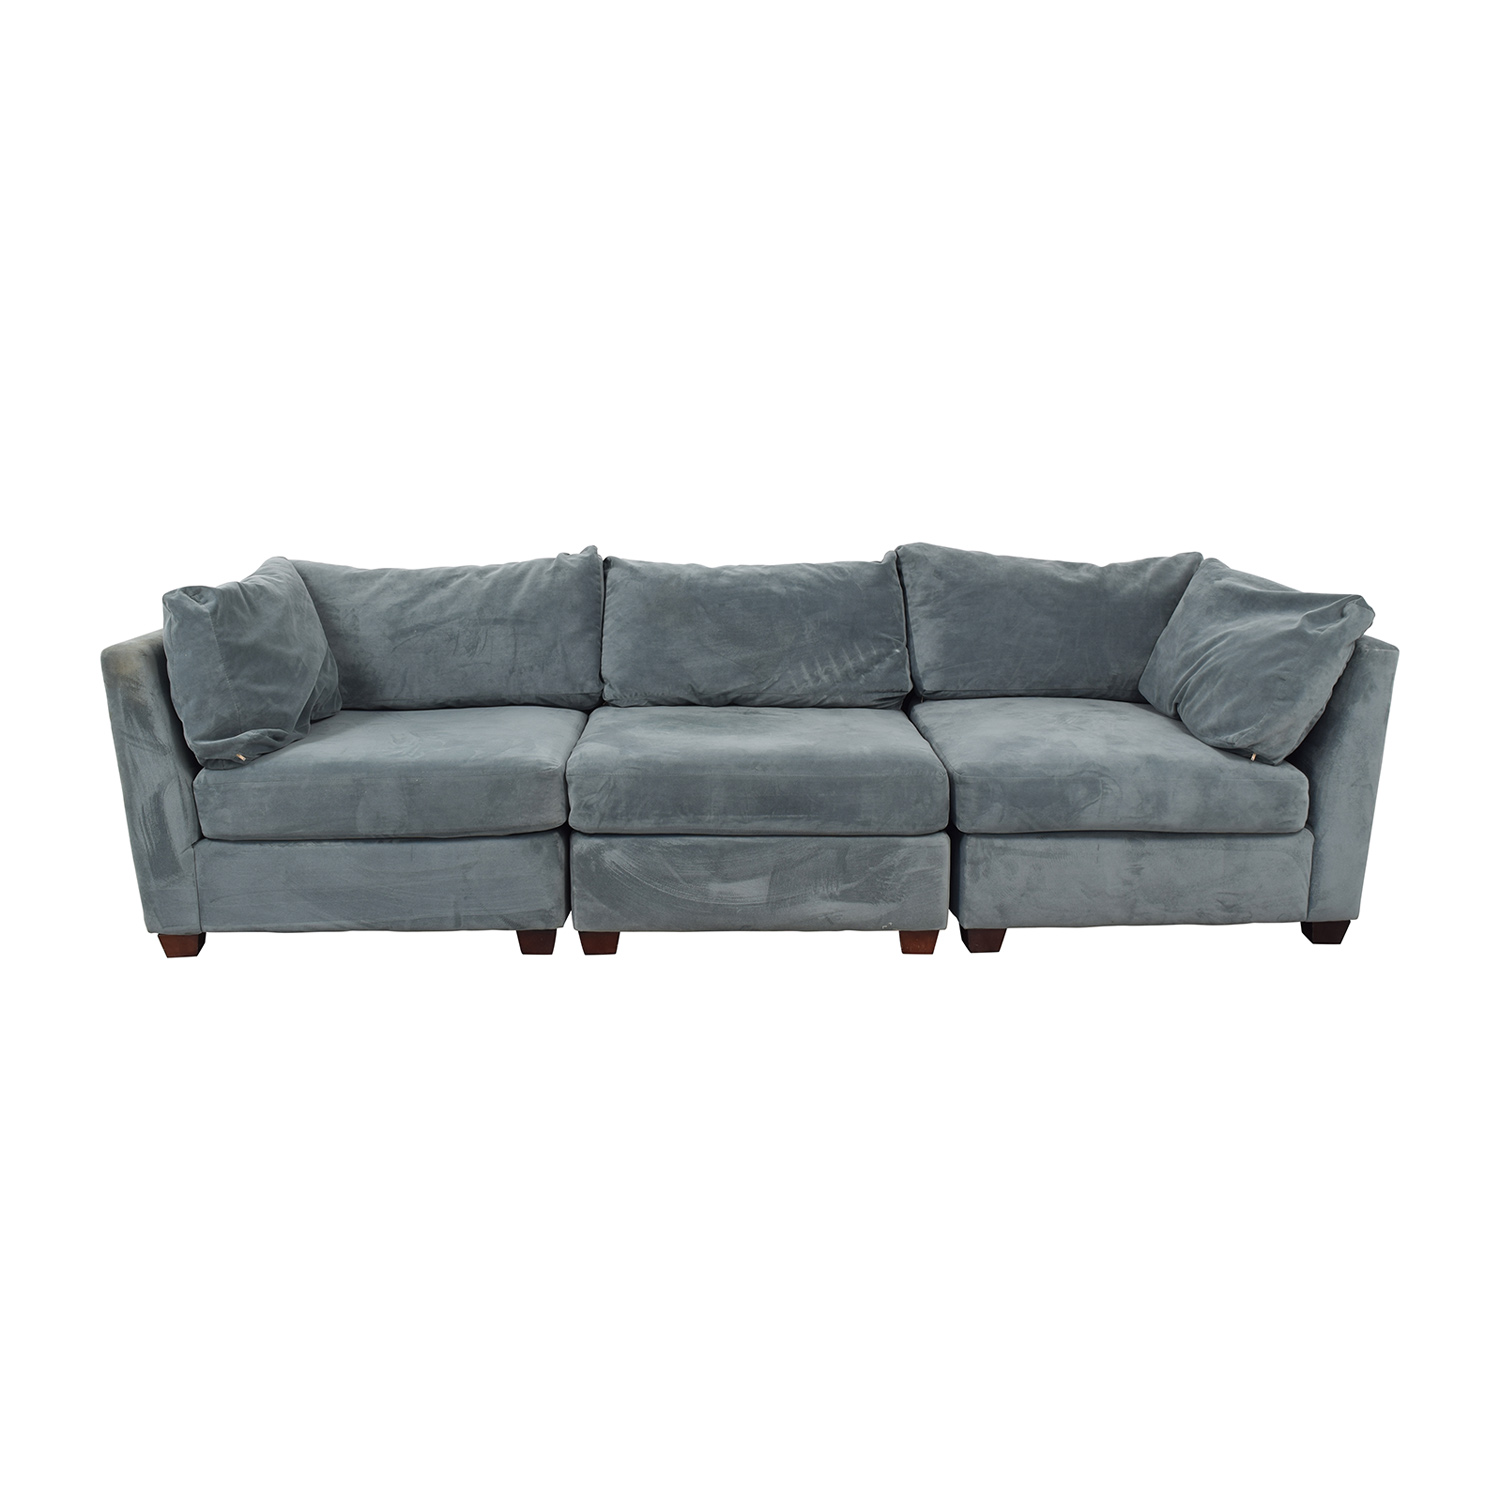 shop Bauhaus Furniture Cornflower Blue Sofa Bauhaus Furniture Sectionals